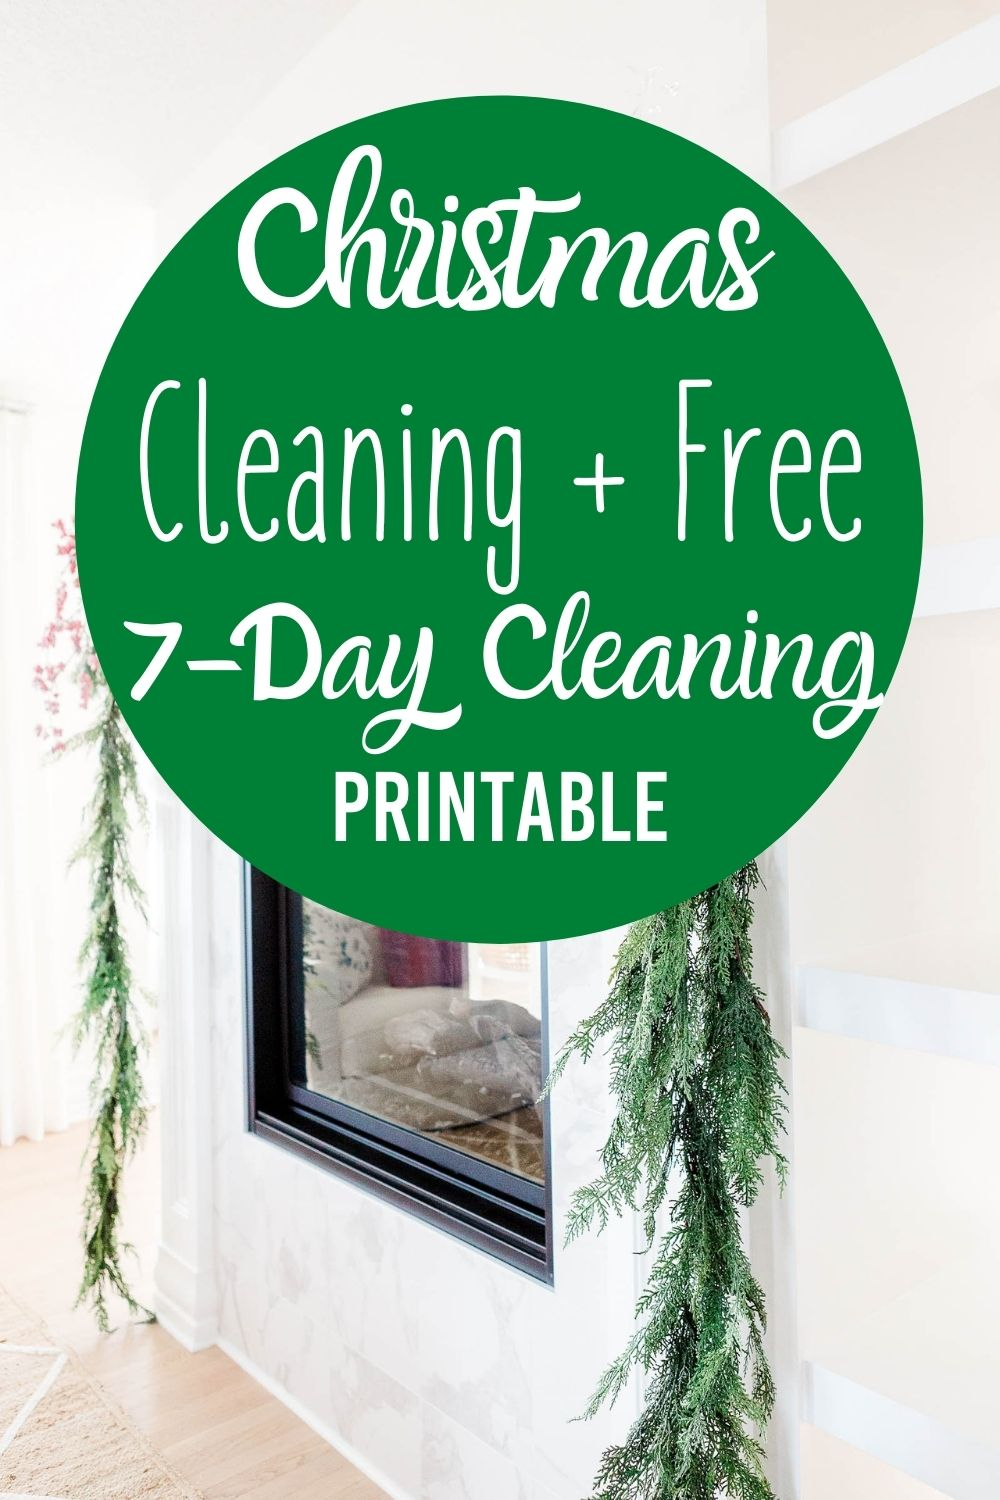 Here is your Christmas cleaning 7-day cleaning plan to tackle every area in your home! This is full of holiday cleaning tips to simplify your time. Included is a free cleaning printable to help you with any cleaning that needs to be done before the holidays. #holiday #cleaning #guide via @homebyjenn